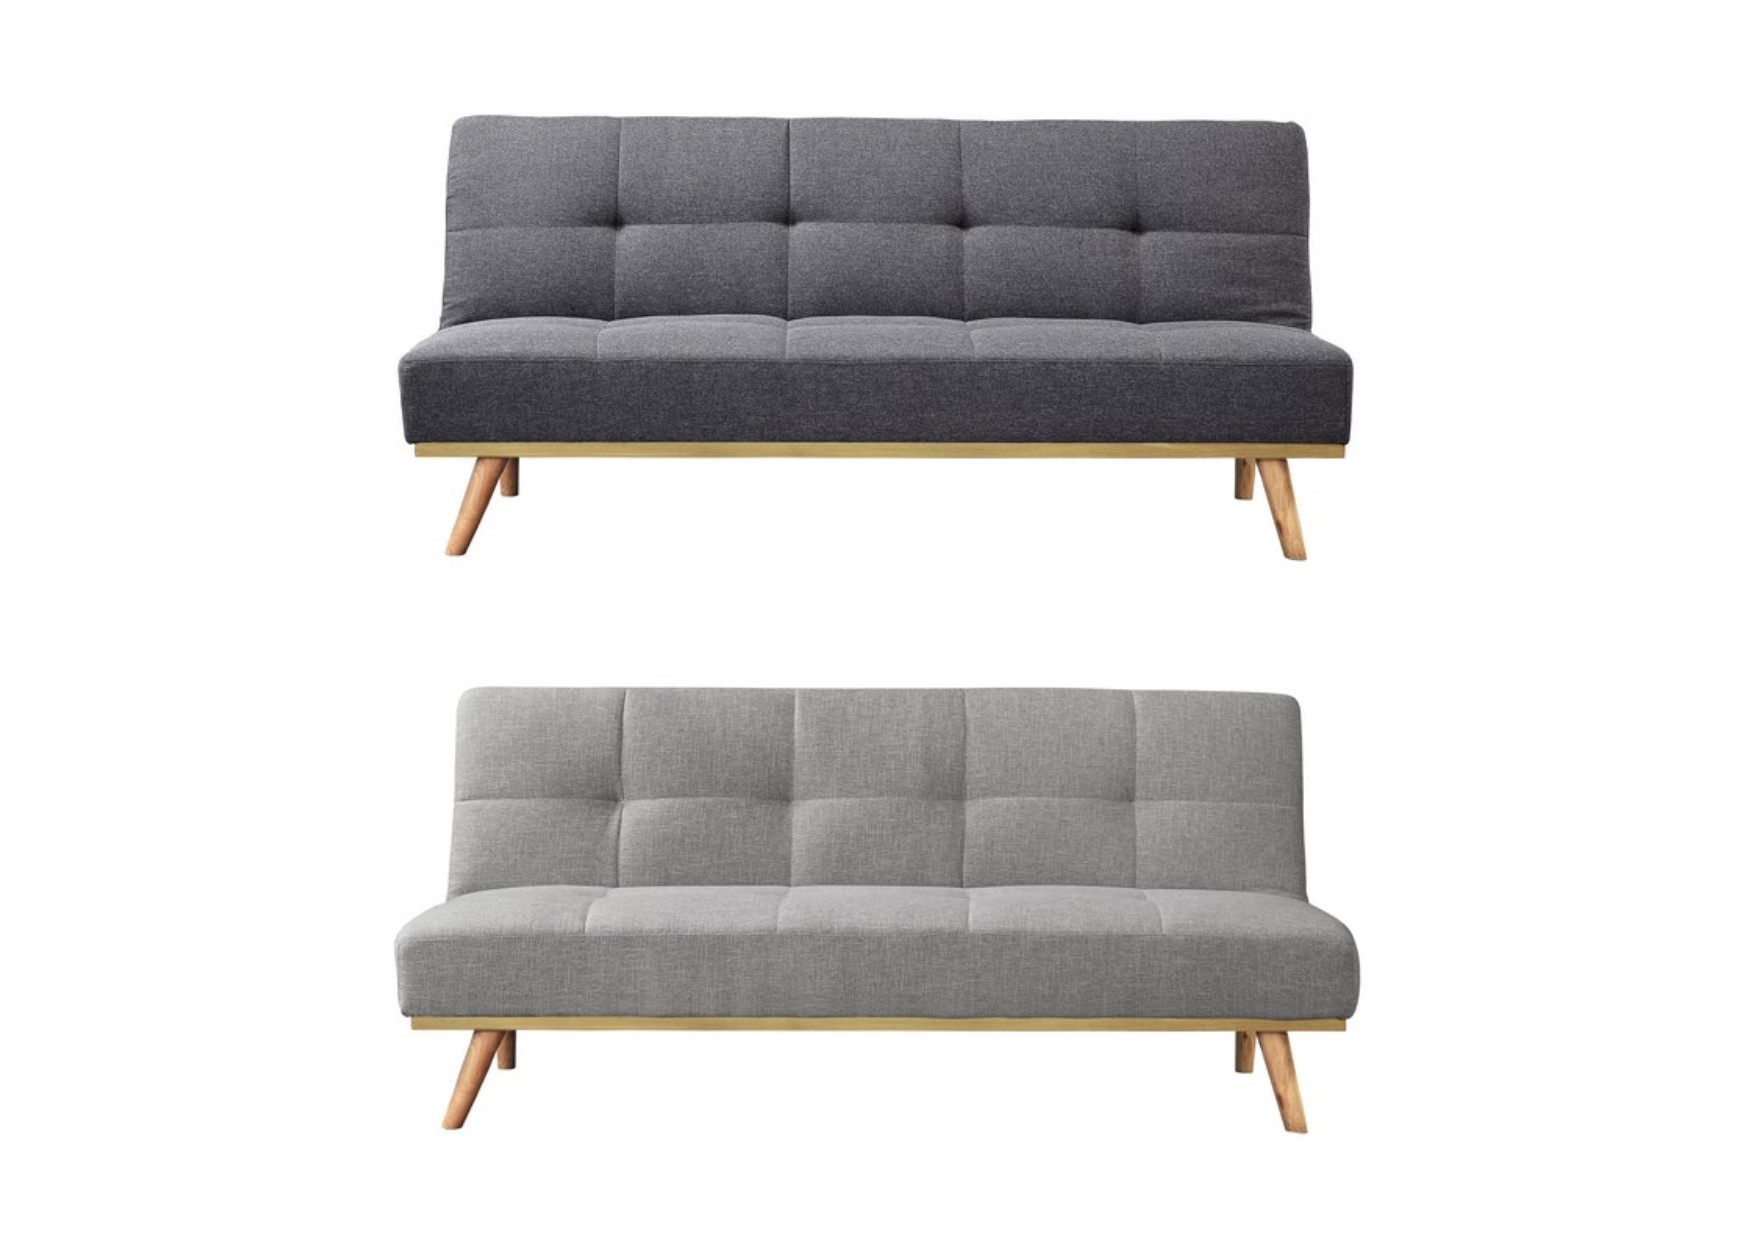 Pleasant Details About Birlea Snug Fabric Sofa Bed Wood Frame Soft Touch Fabric Light Or Dark Grey Ocoug Best Dining Table And Chair Ideas Images Ocougorg